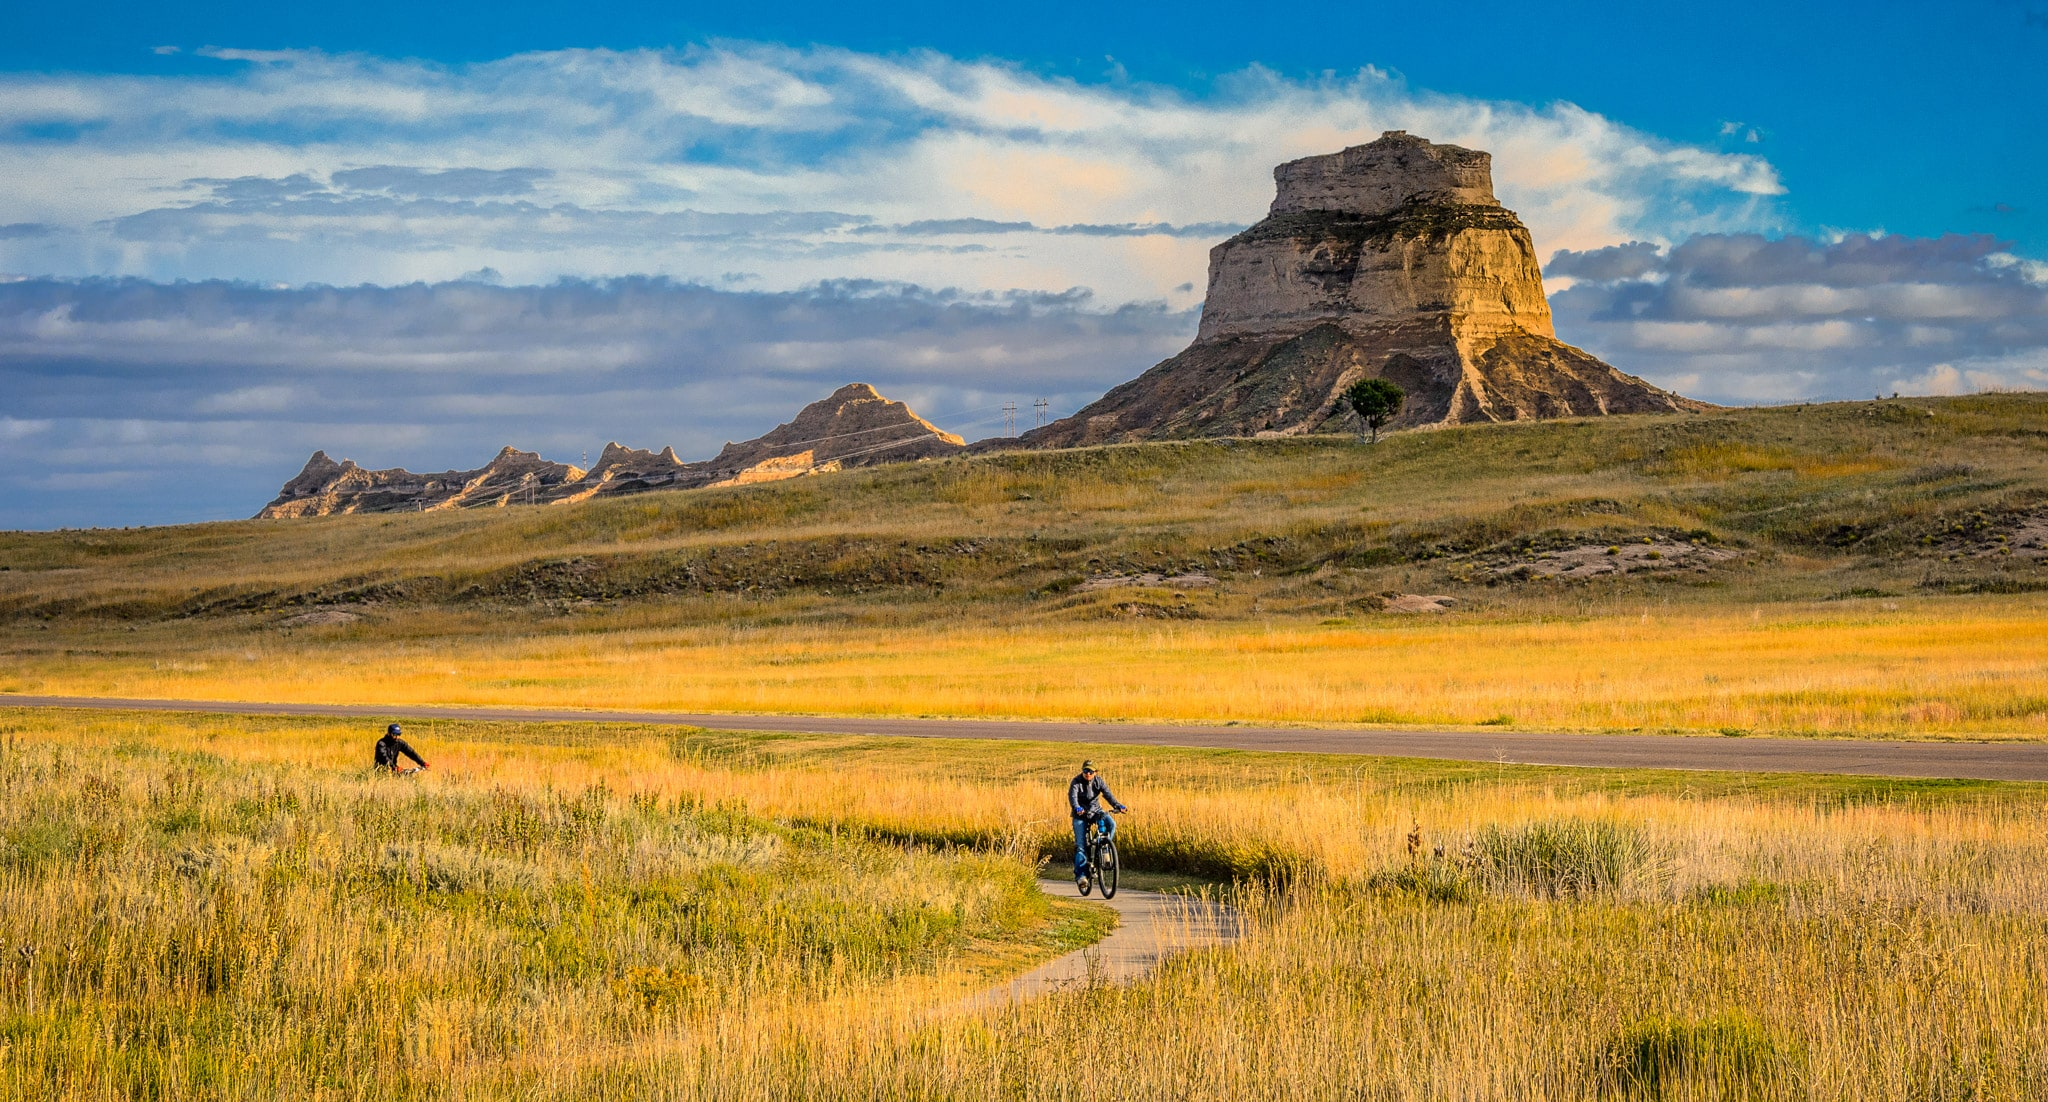 Two bicyclists enjoy the bike trails in Scotts Bluff National Monument in Nebraska.